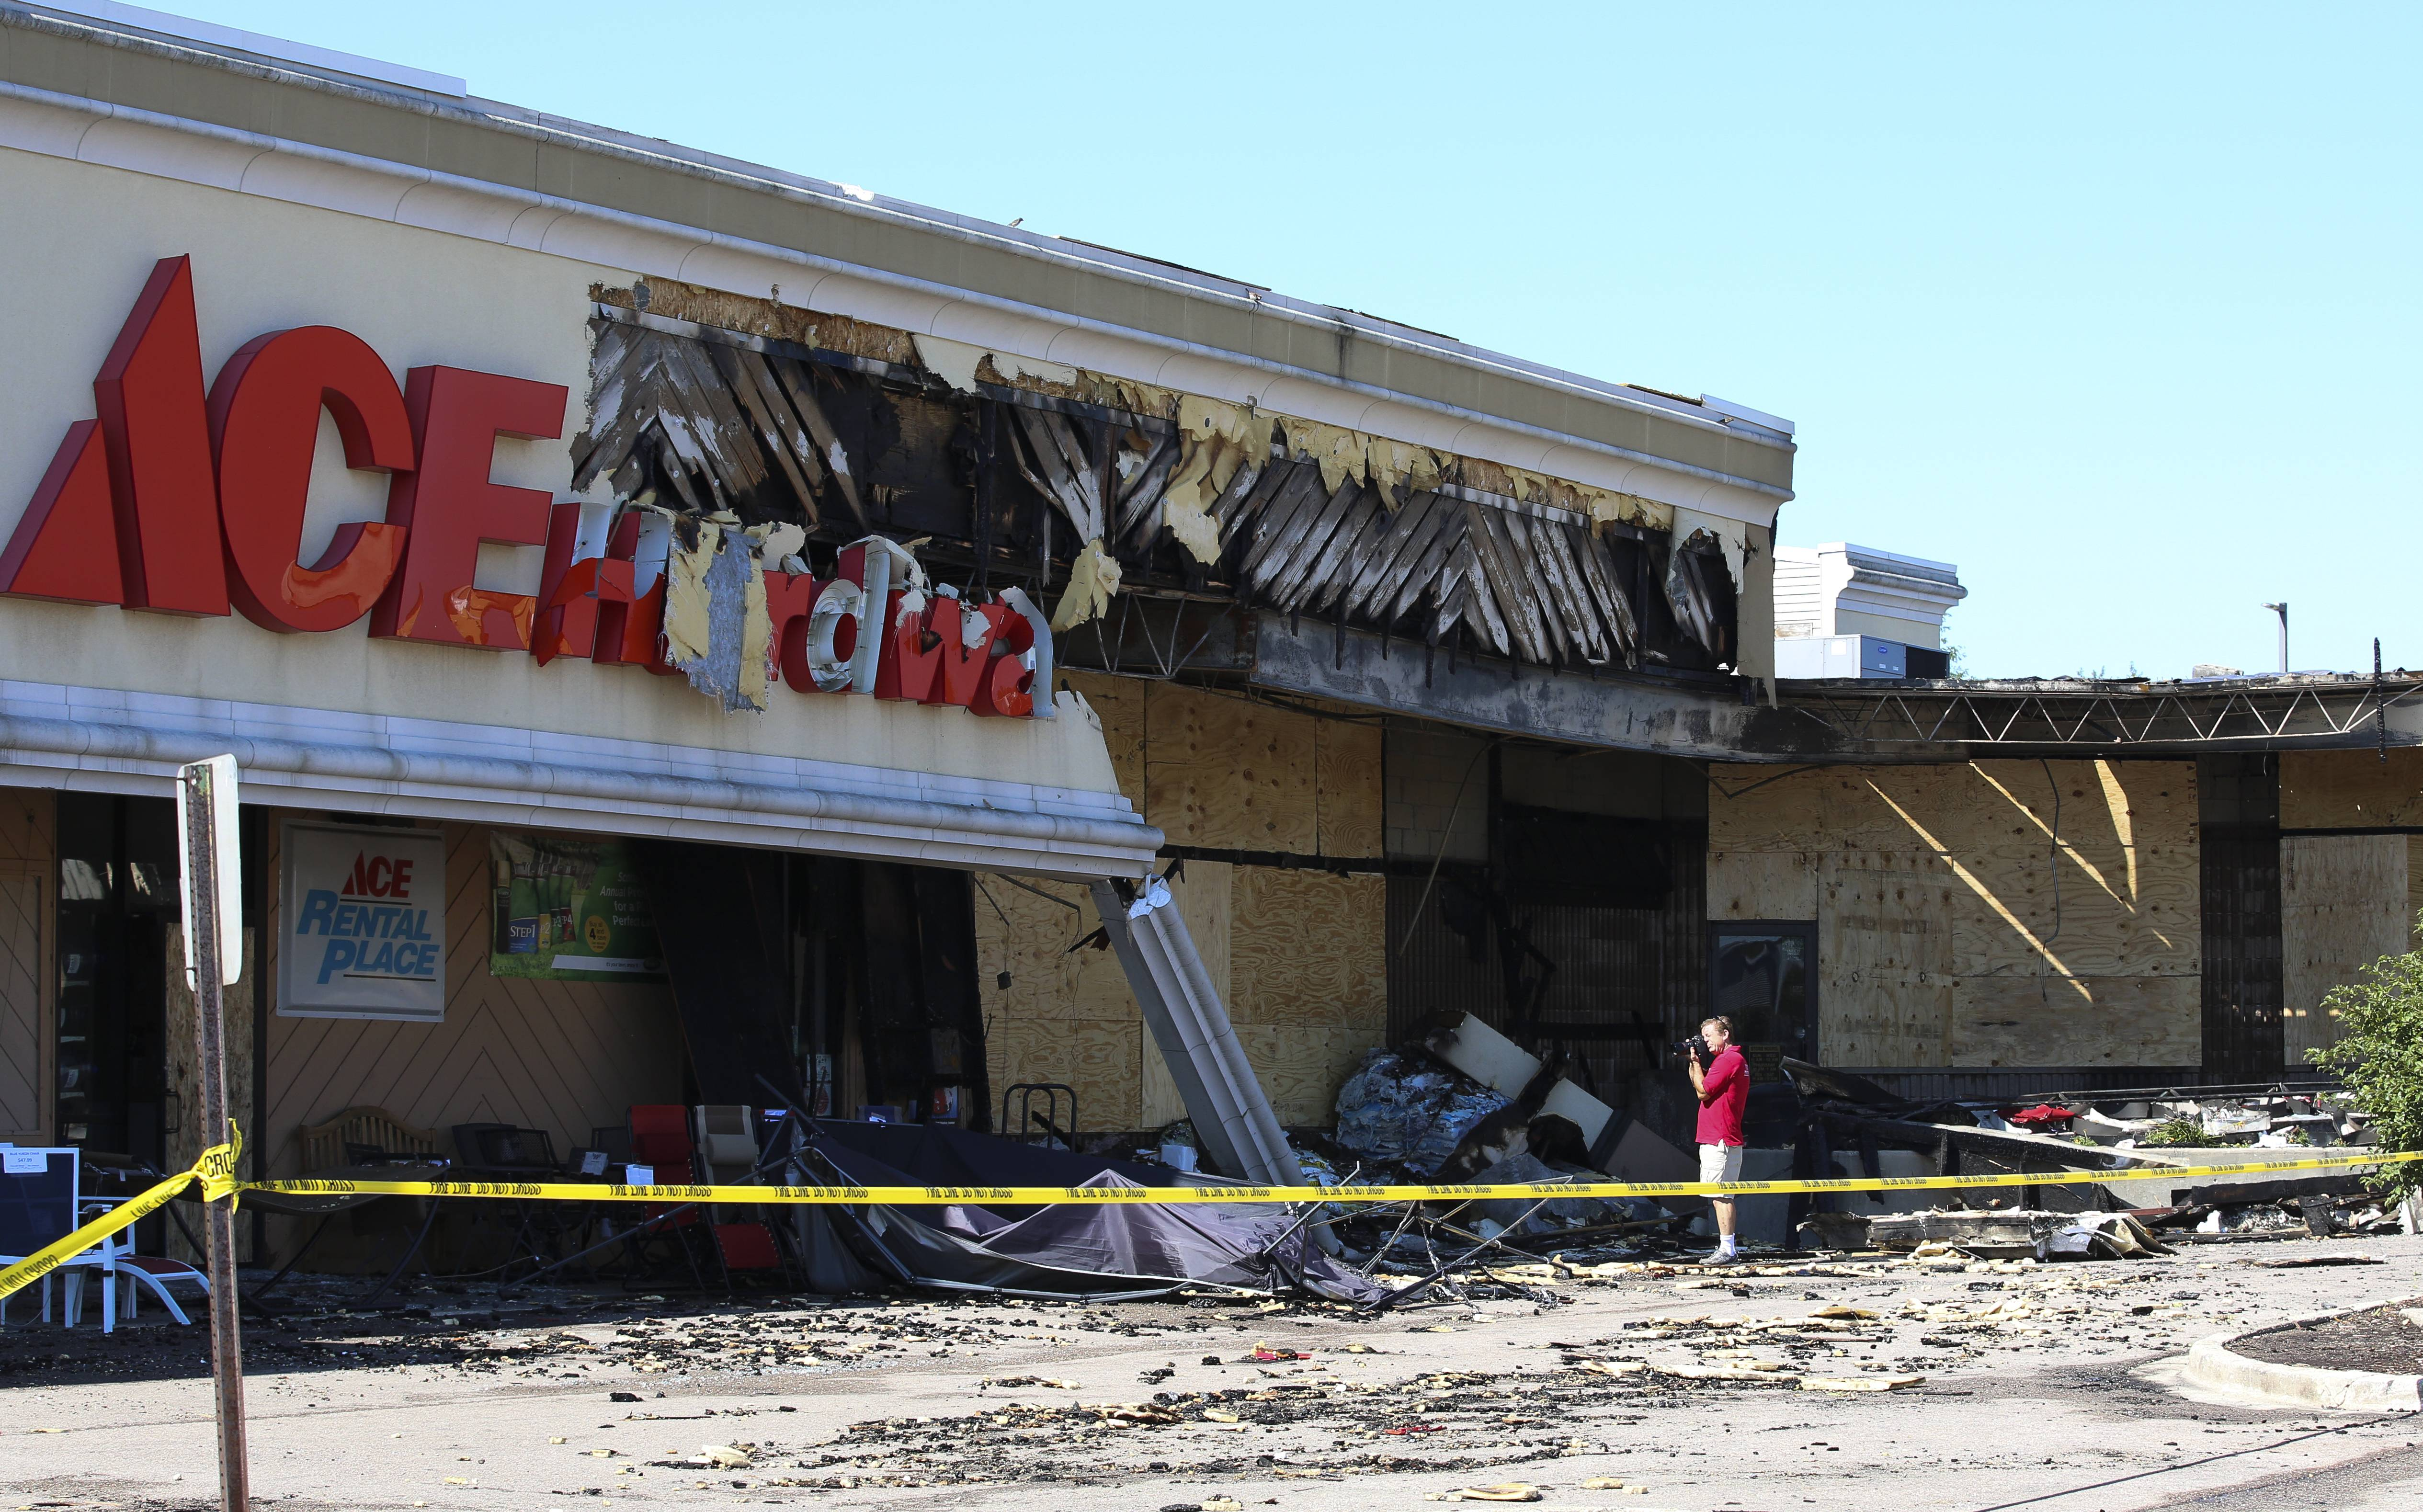 A fire early Monday morning in a Roselle shopping area caused more than $500,000 damage and forced the temporary closure of six businesses, authorities said.